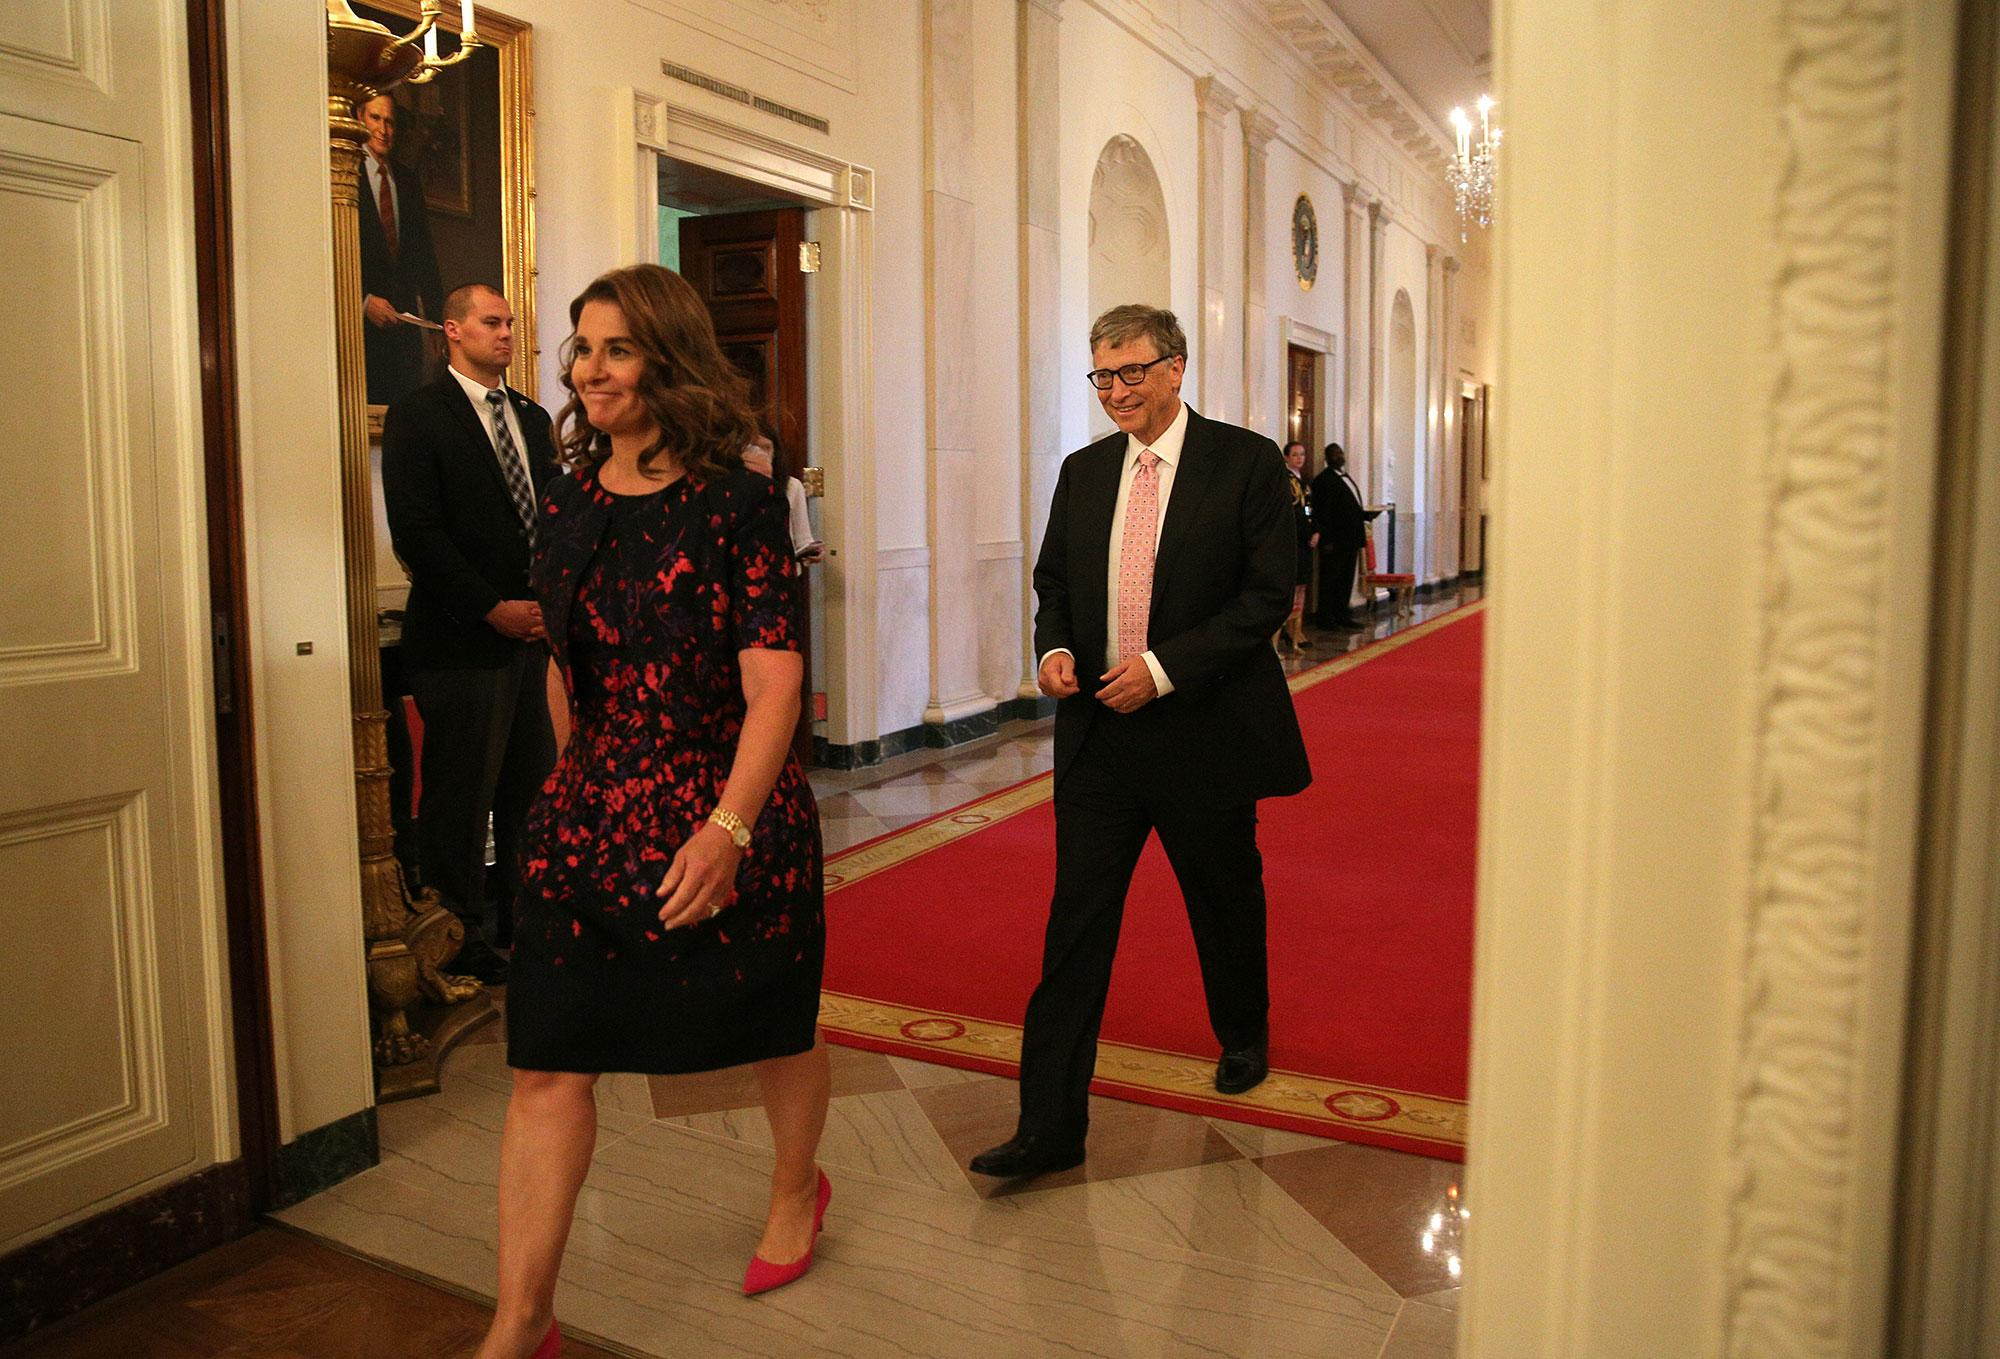 <p>Bill and Melinda Gates walk to their seats before a ceremony awarding the Presidential Medal of Freedom to various recipients in the East Room of the White House in Washington, Nov. 22, 2016. (Carlos Barria/Reuters) </p>